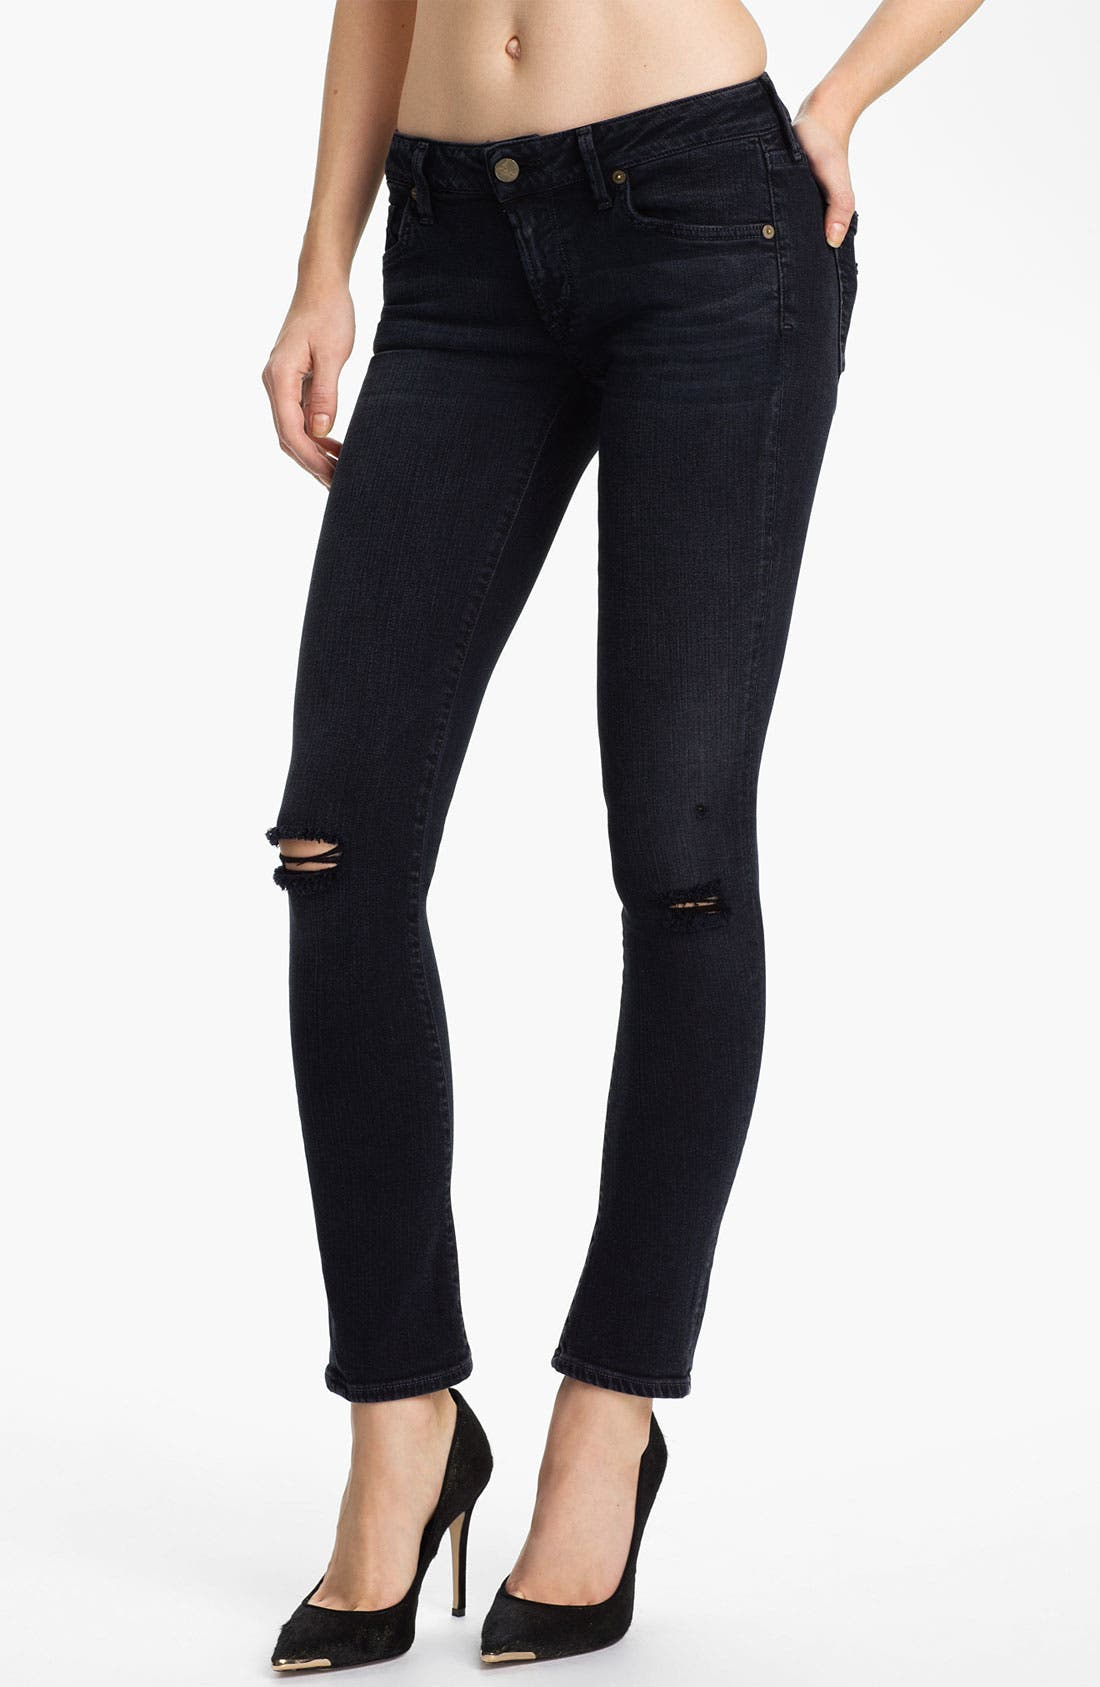 Alternate Image 1 Selected - Citizens of Humanity 'Racer' Crop Skinny Jeans (Nocturn)